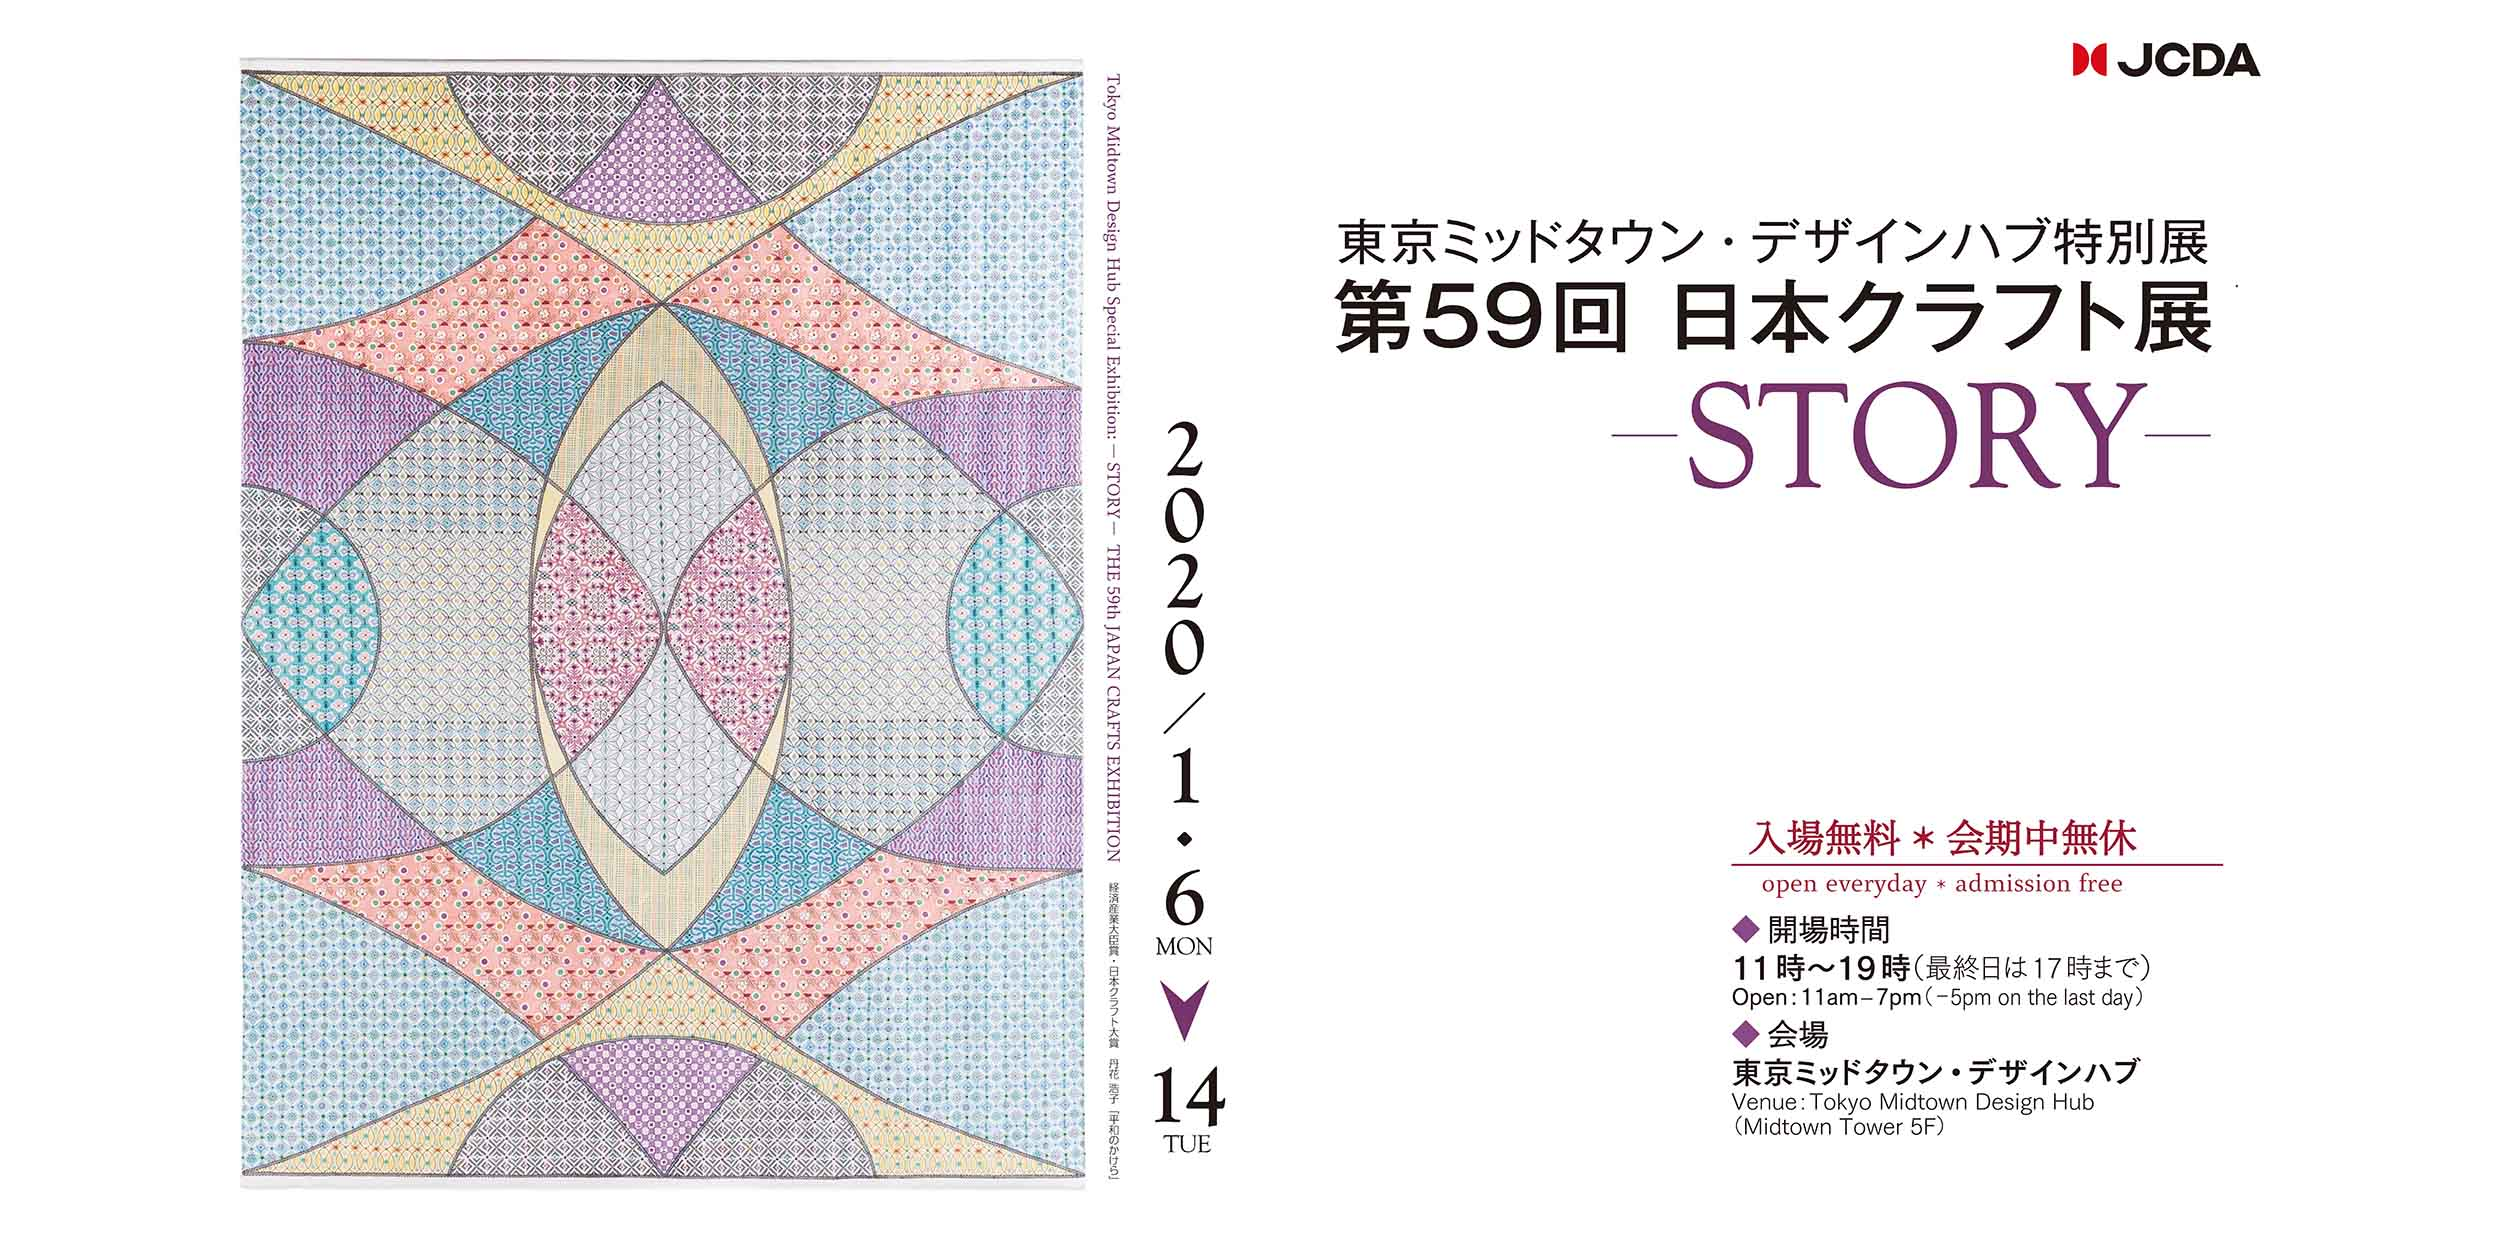 – STORY – THE 59th JAPAN CRAFTS EXHIBITION